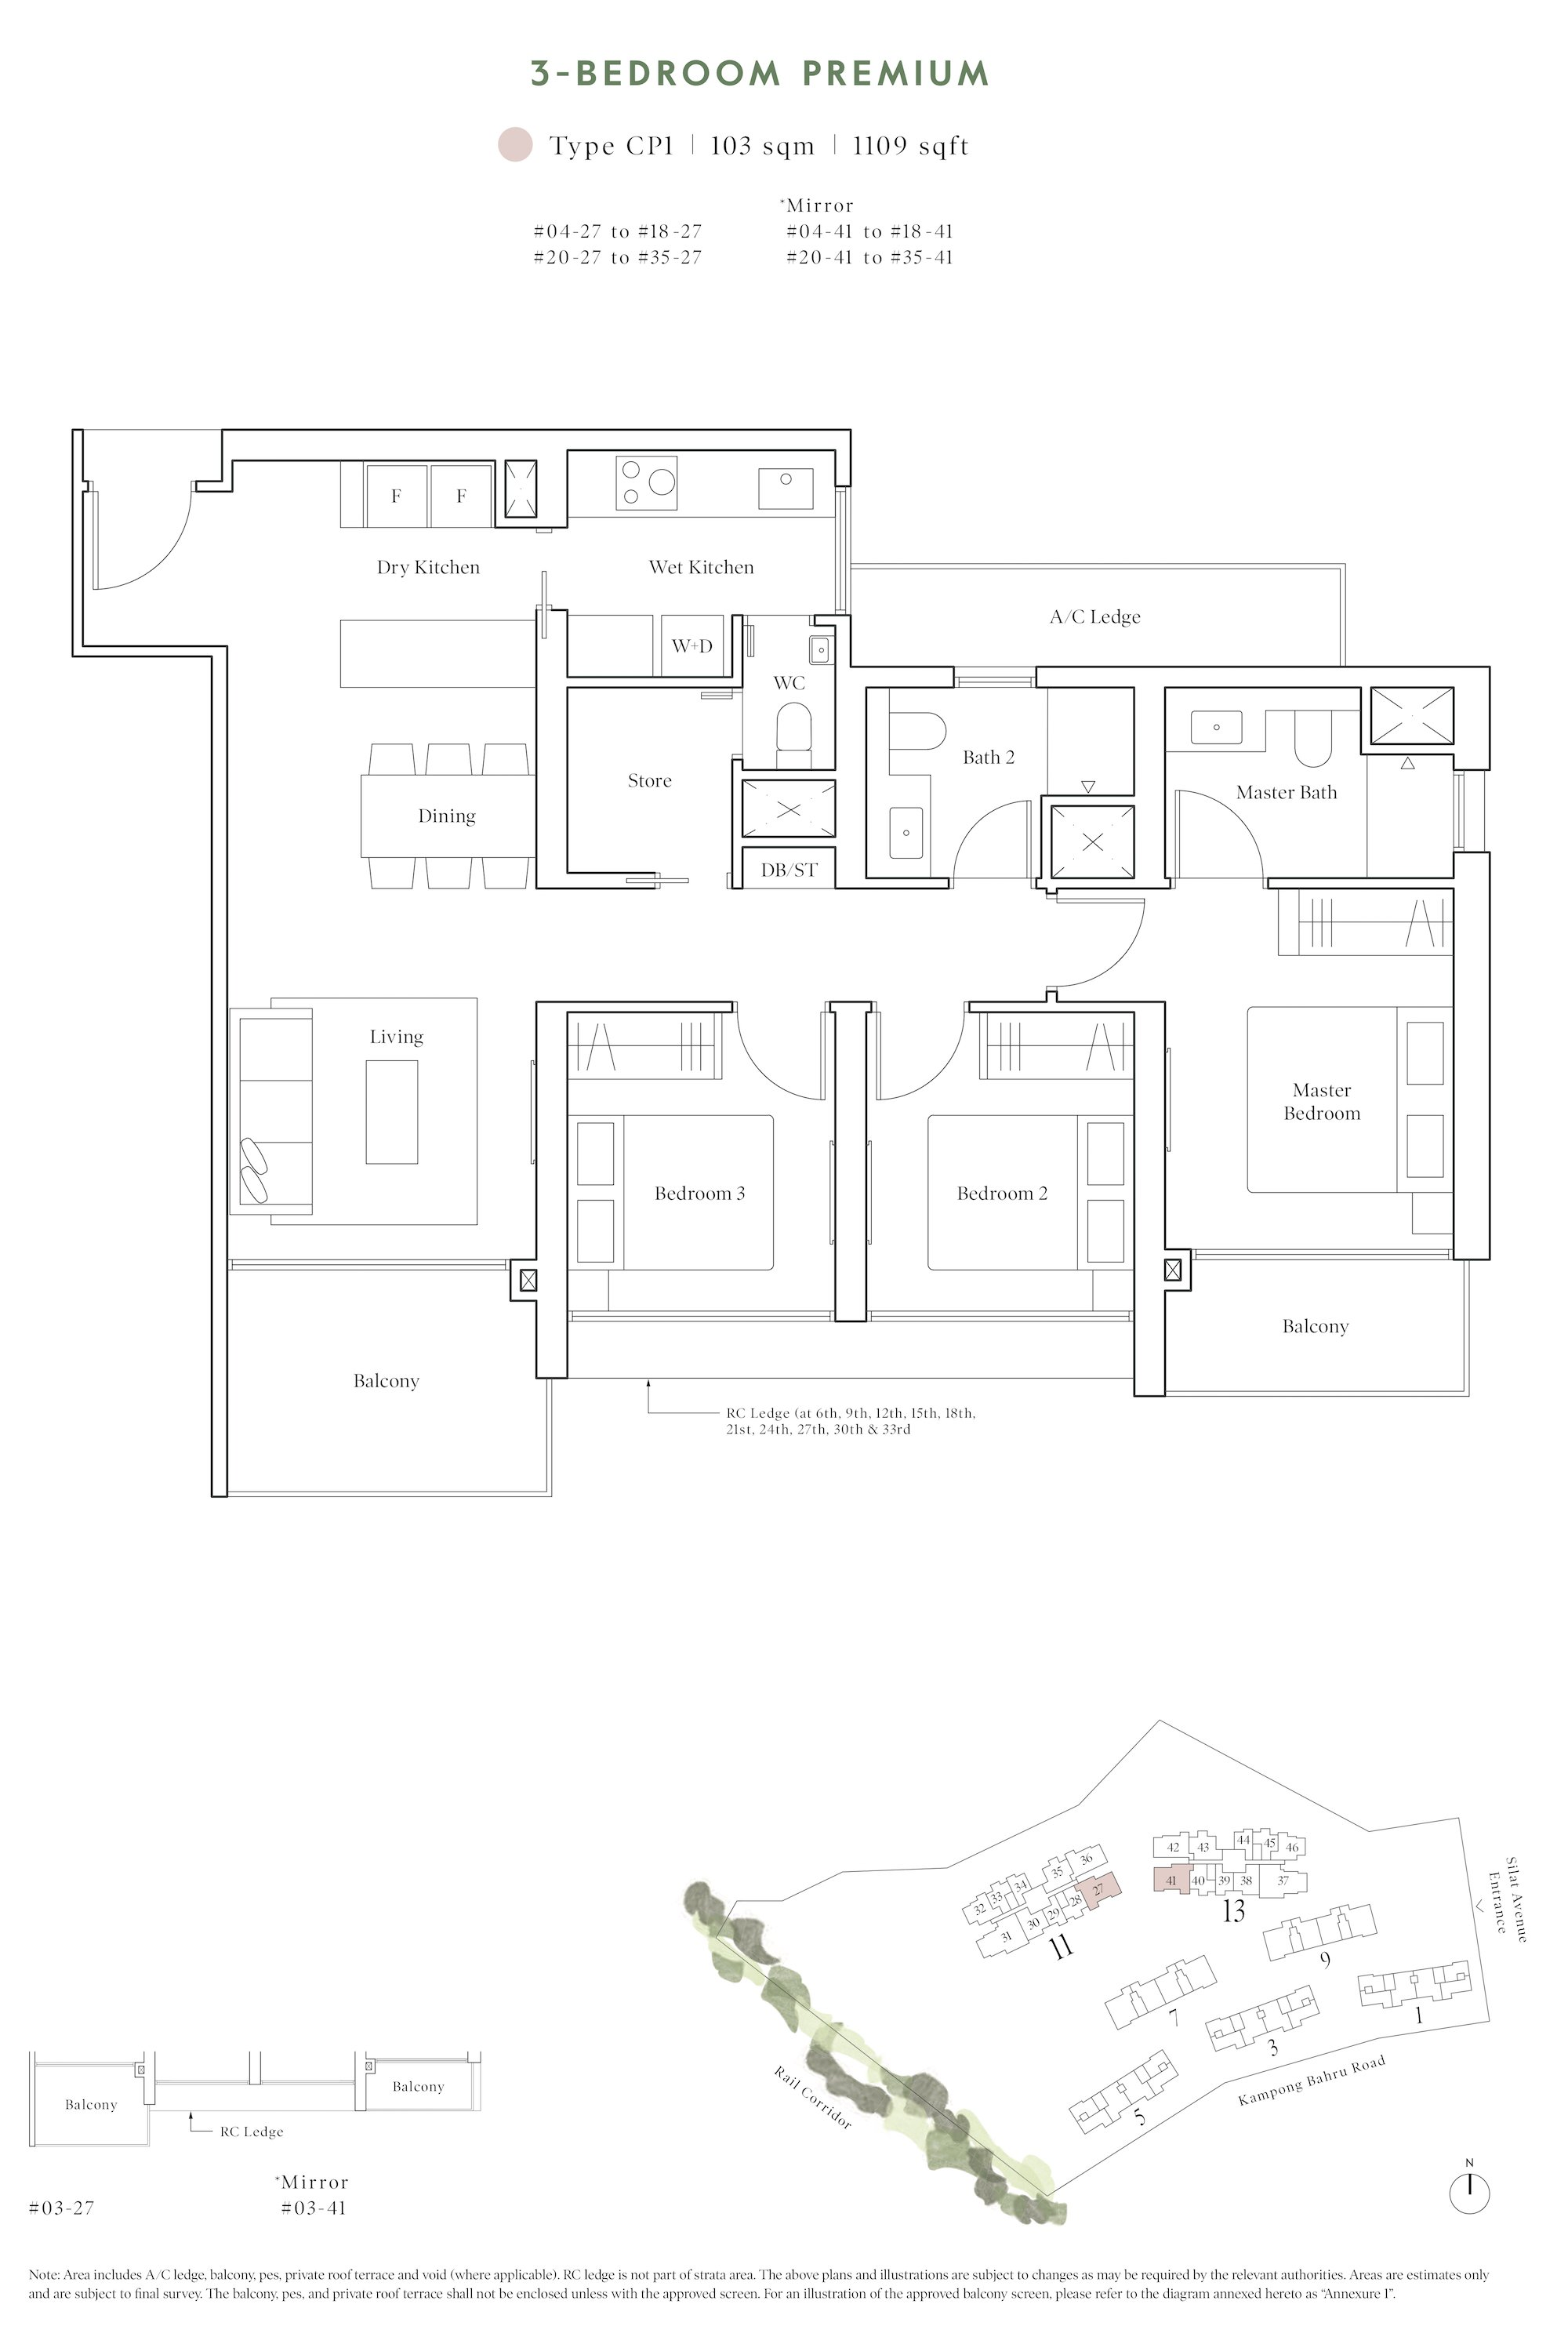 Avenue South Residence 南峰雅苑 horizon floor plan 3-bedroom cp1